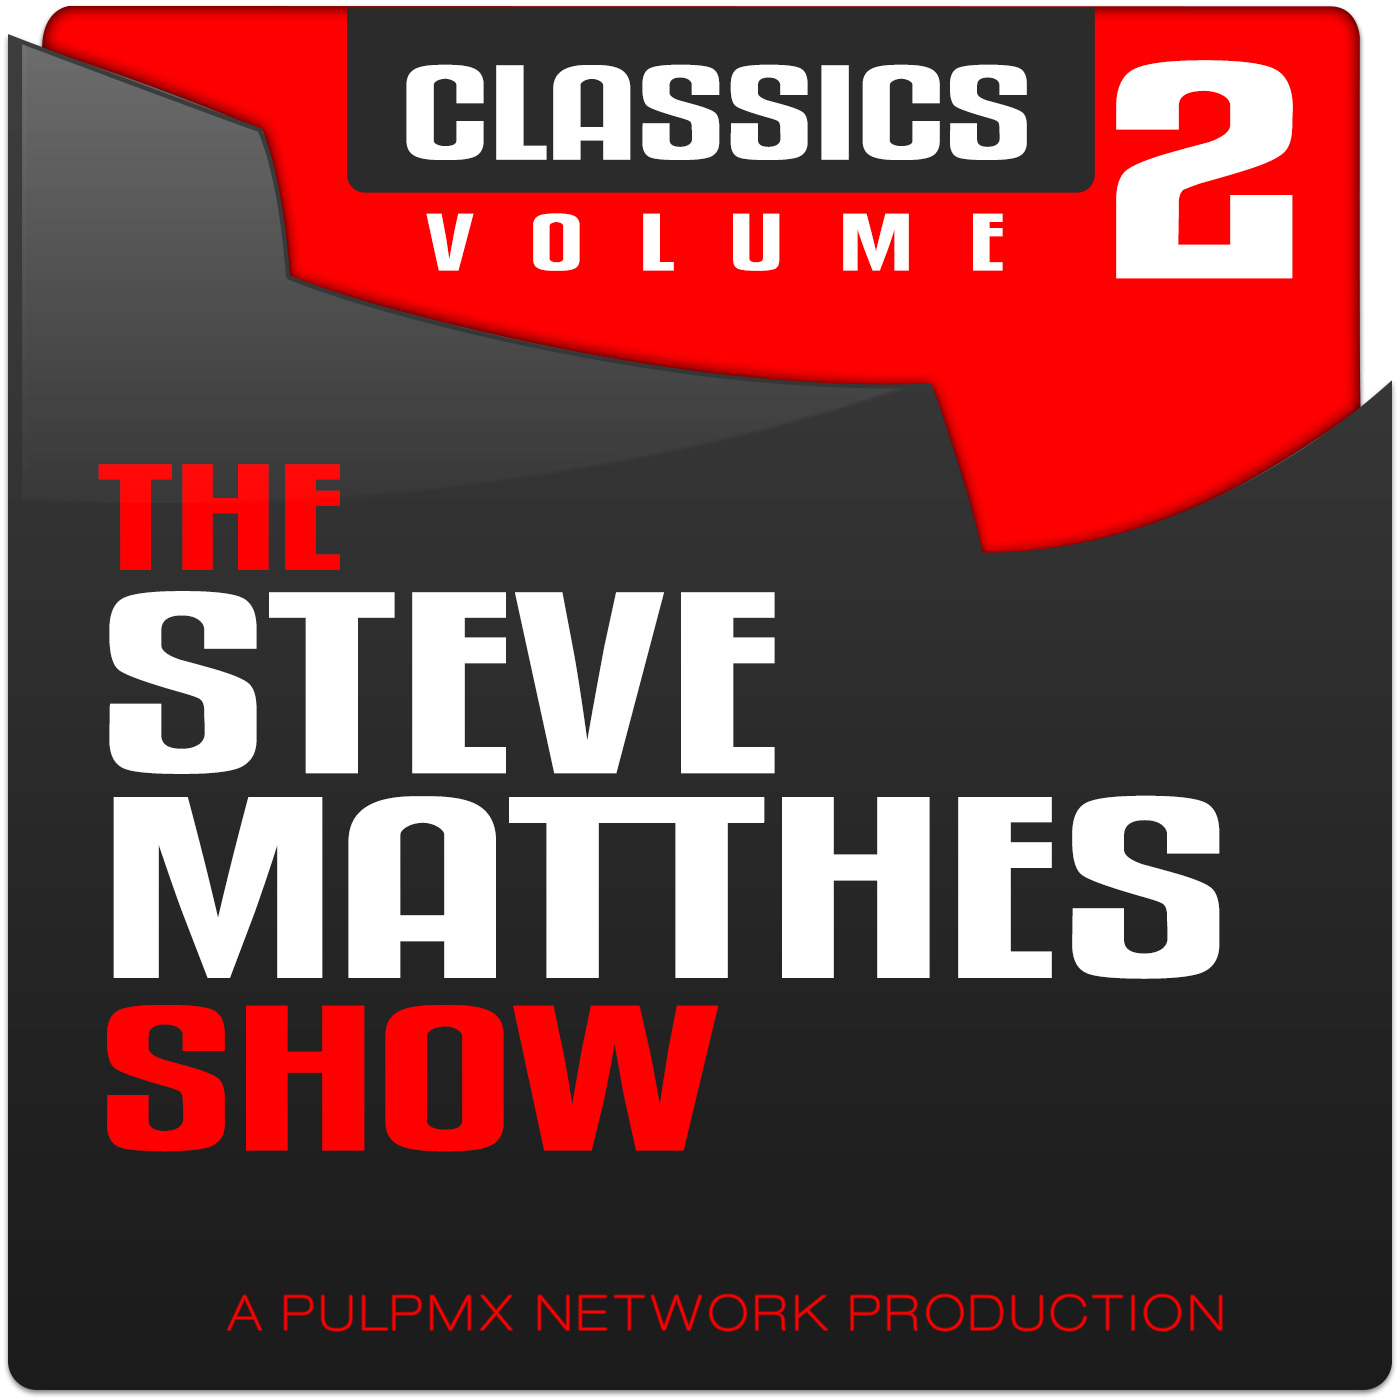 The Steve Matthes Show Classics Vol.2